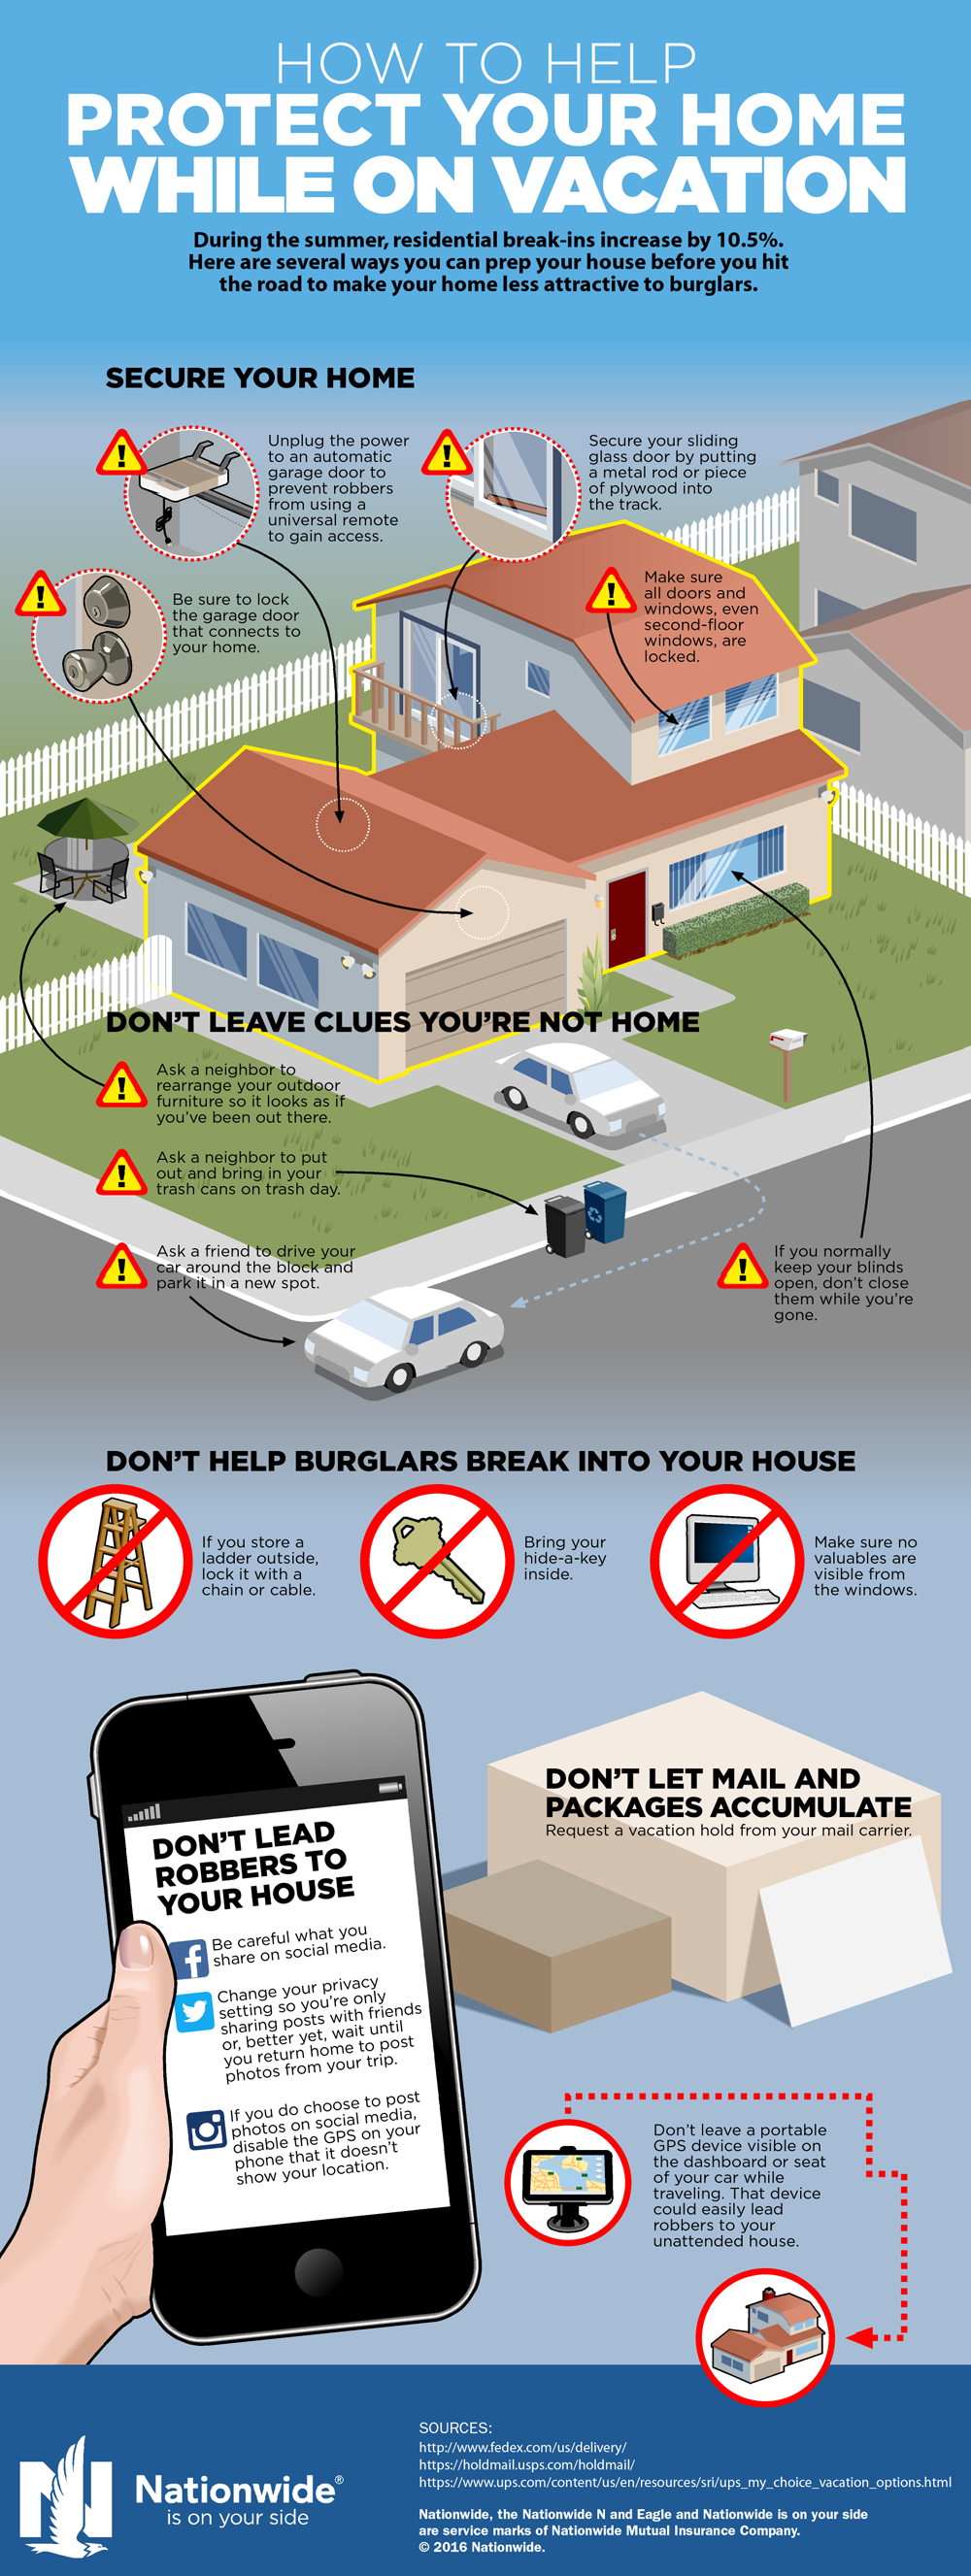 7 Ways to Protect Your Home While You're Away [Infographic]